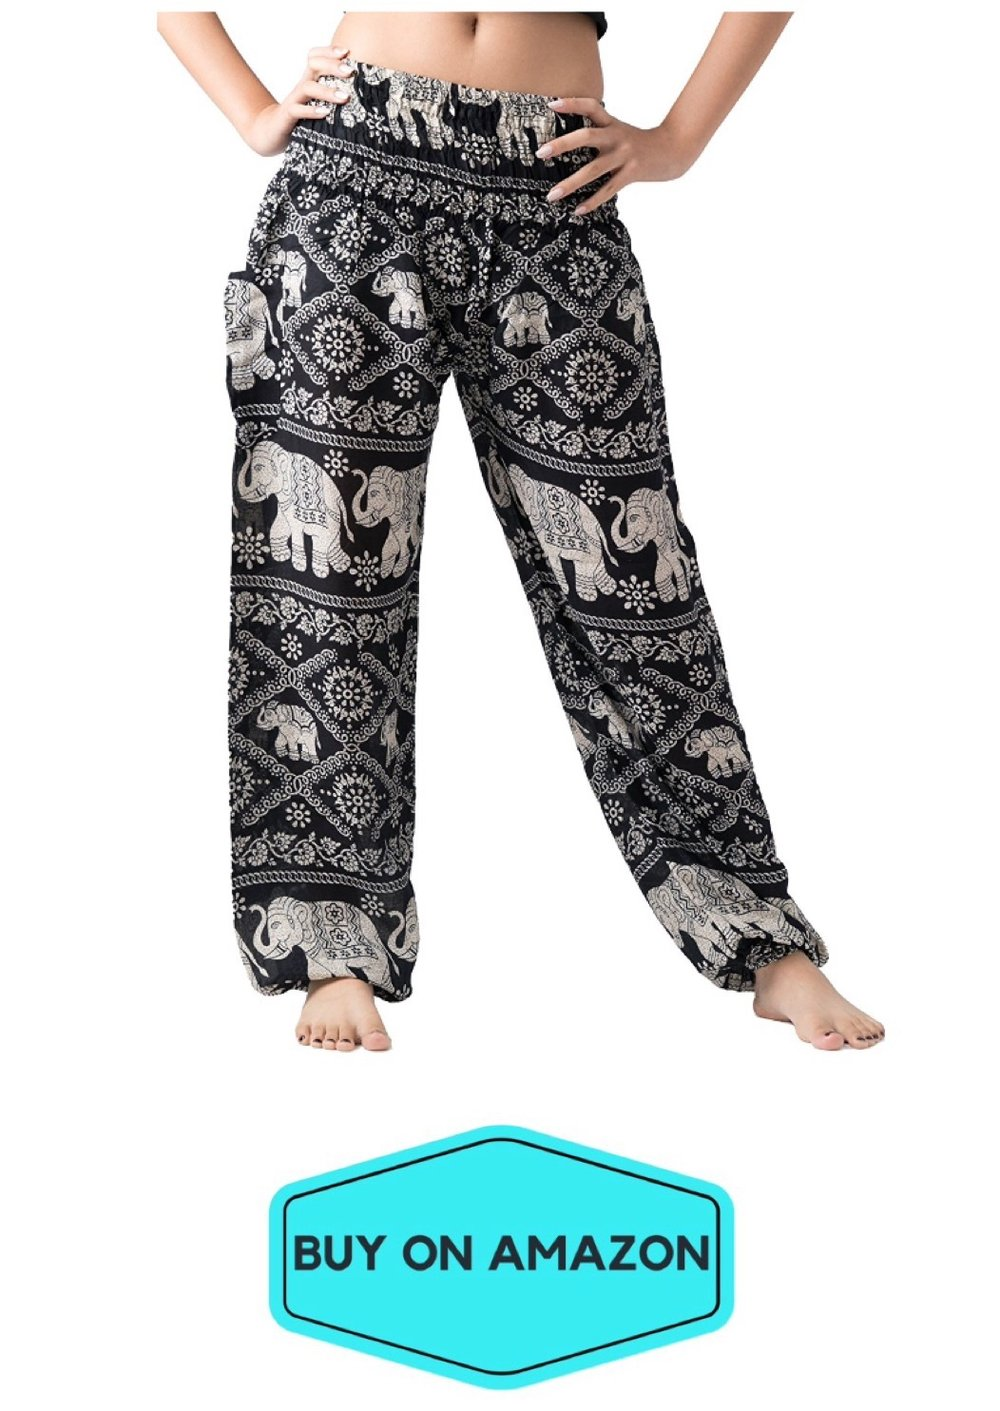 Elephant Yoga Pants